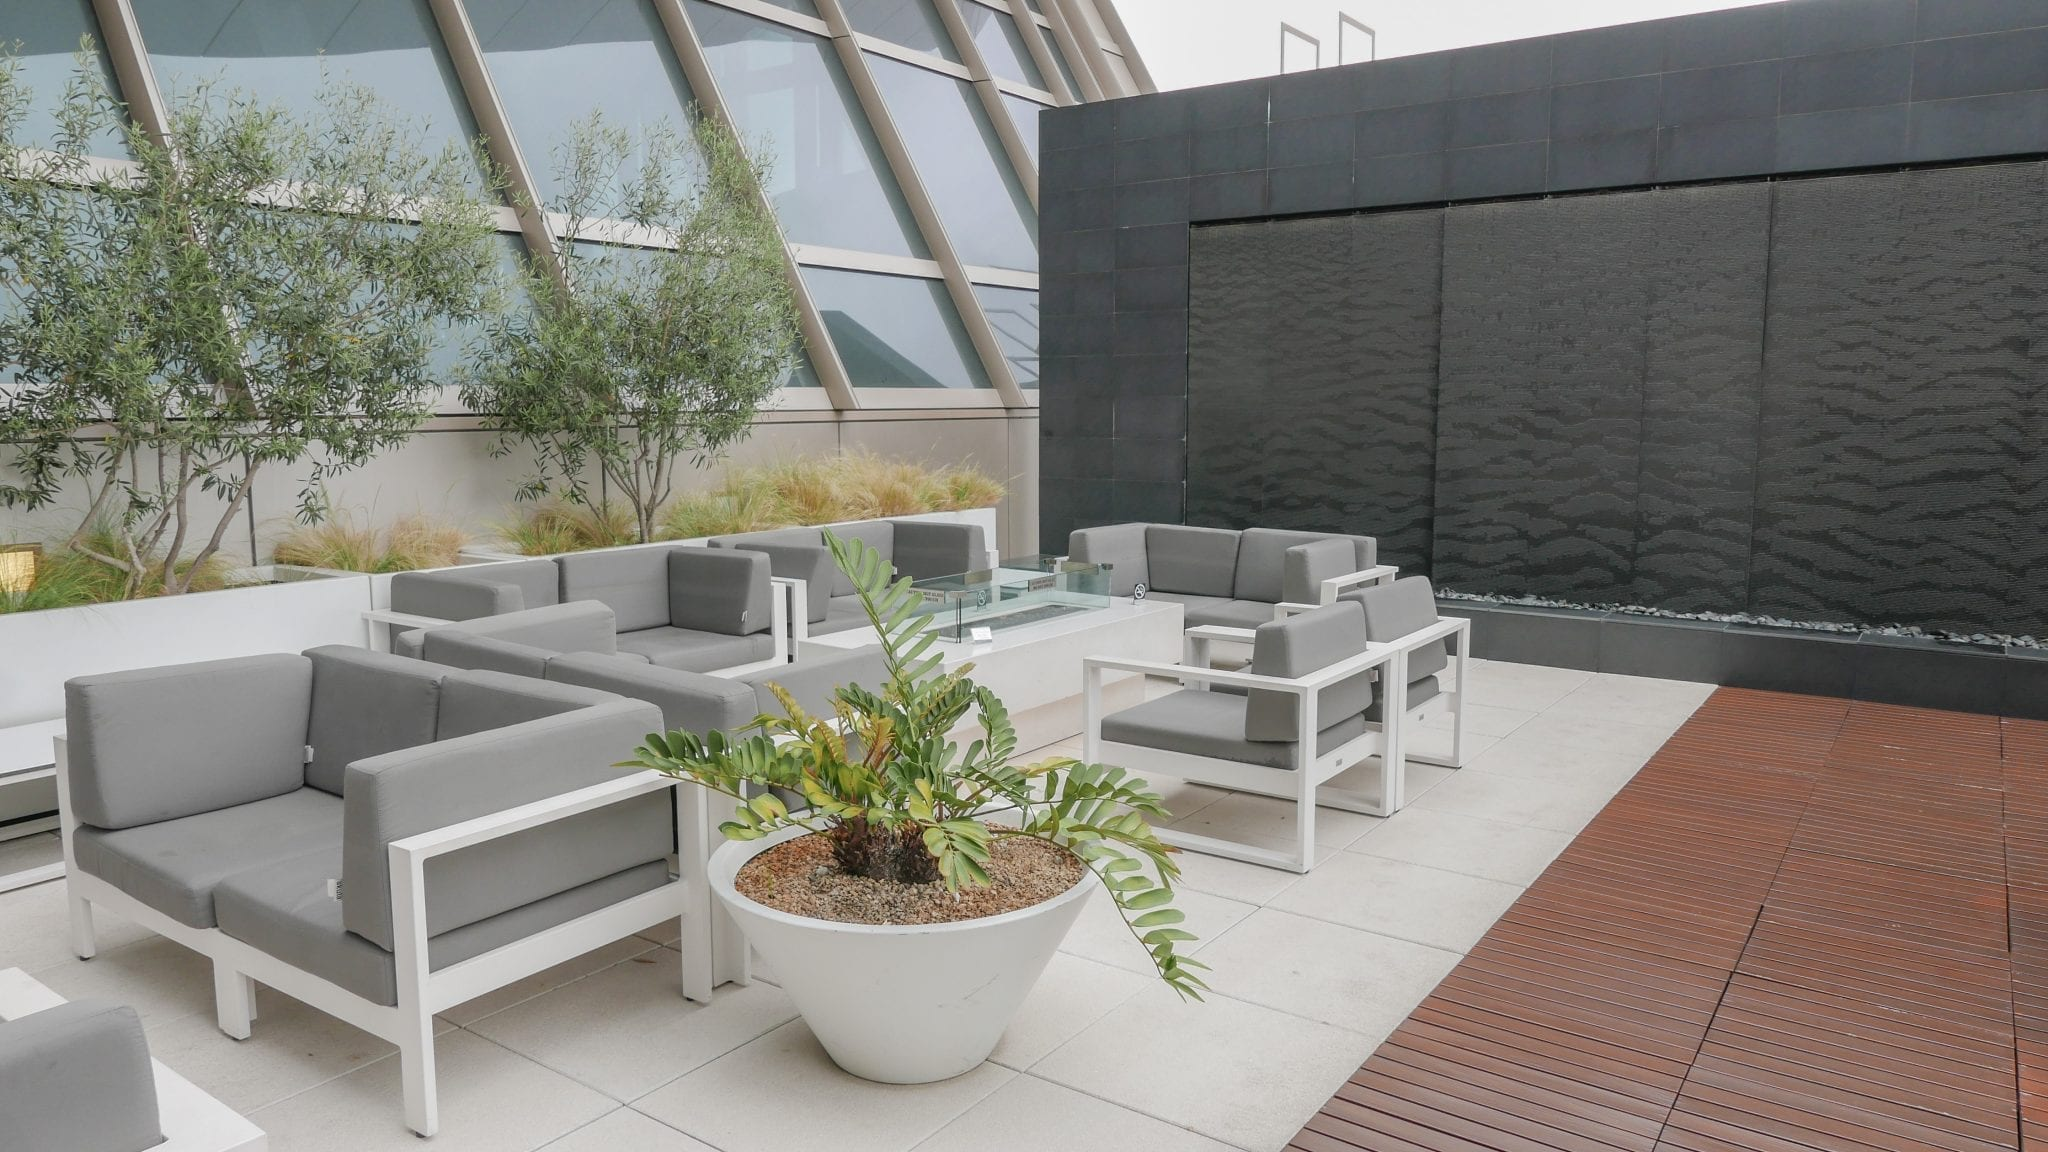 star alliance lounge LAX 21 - The joys of Alaska Miles: CX Business Class from ZRH to HKG for £675 one-way!